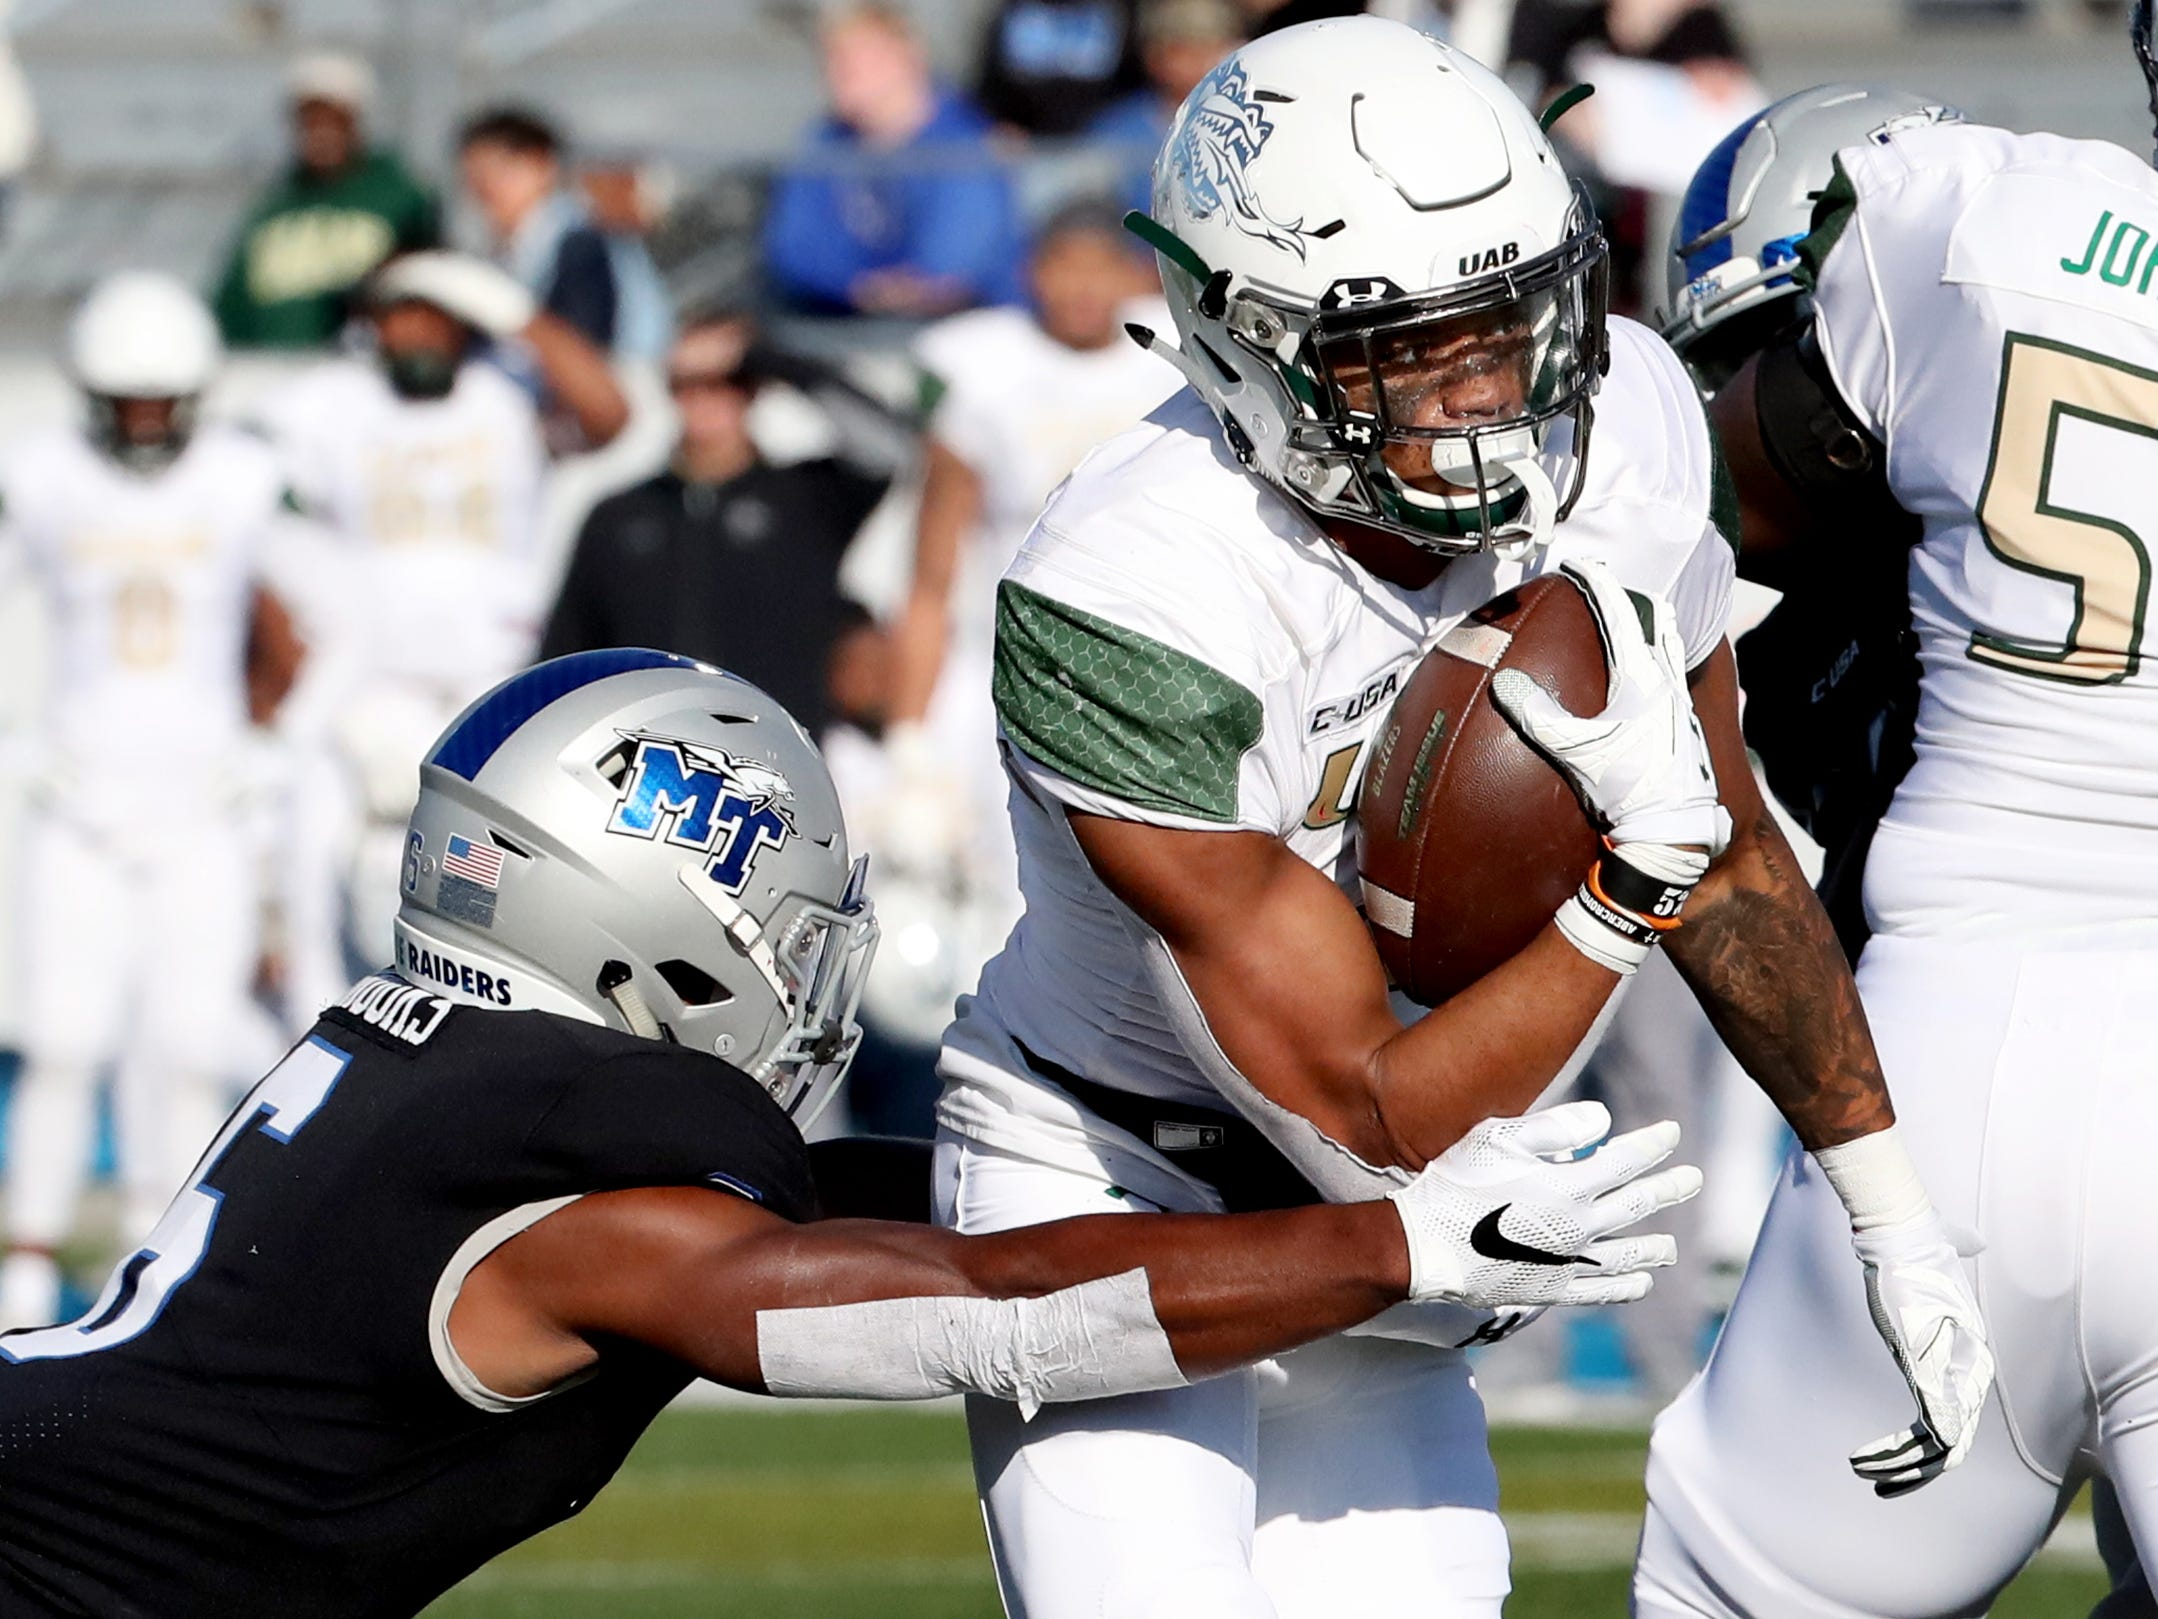 MTSU's Khalil Brooks (6) tackles UAB's Jarrion Street (5) during the game at MTSU on Saturday, Nov. 24, 2018.